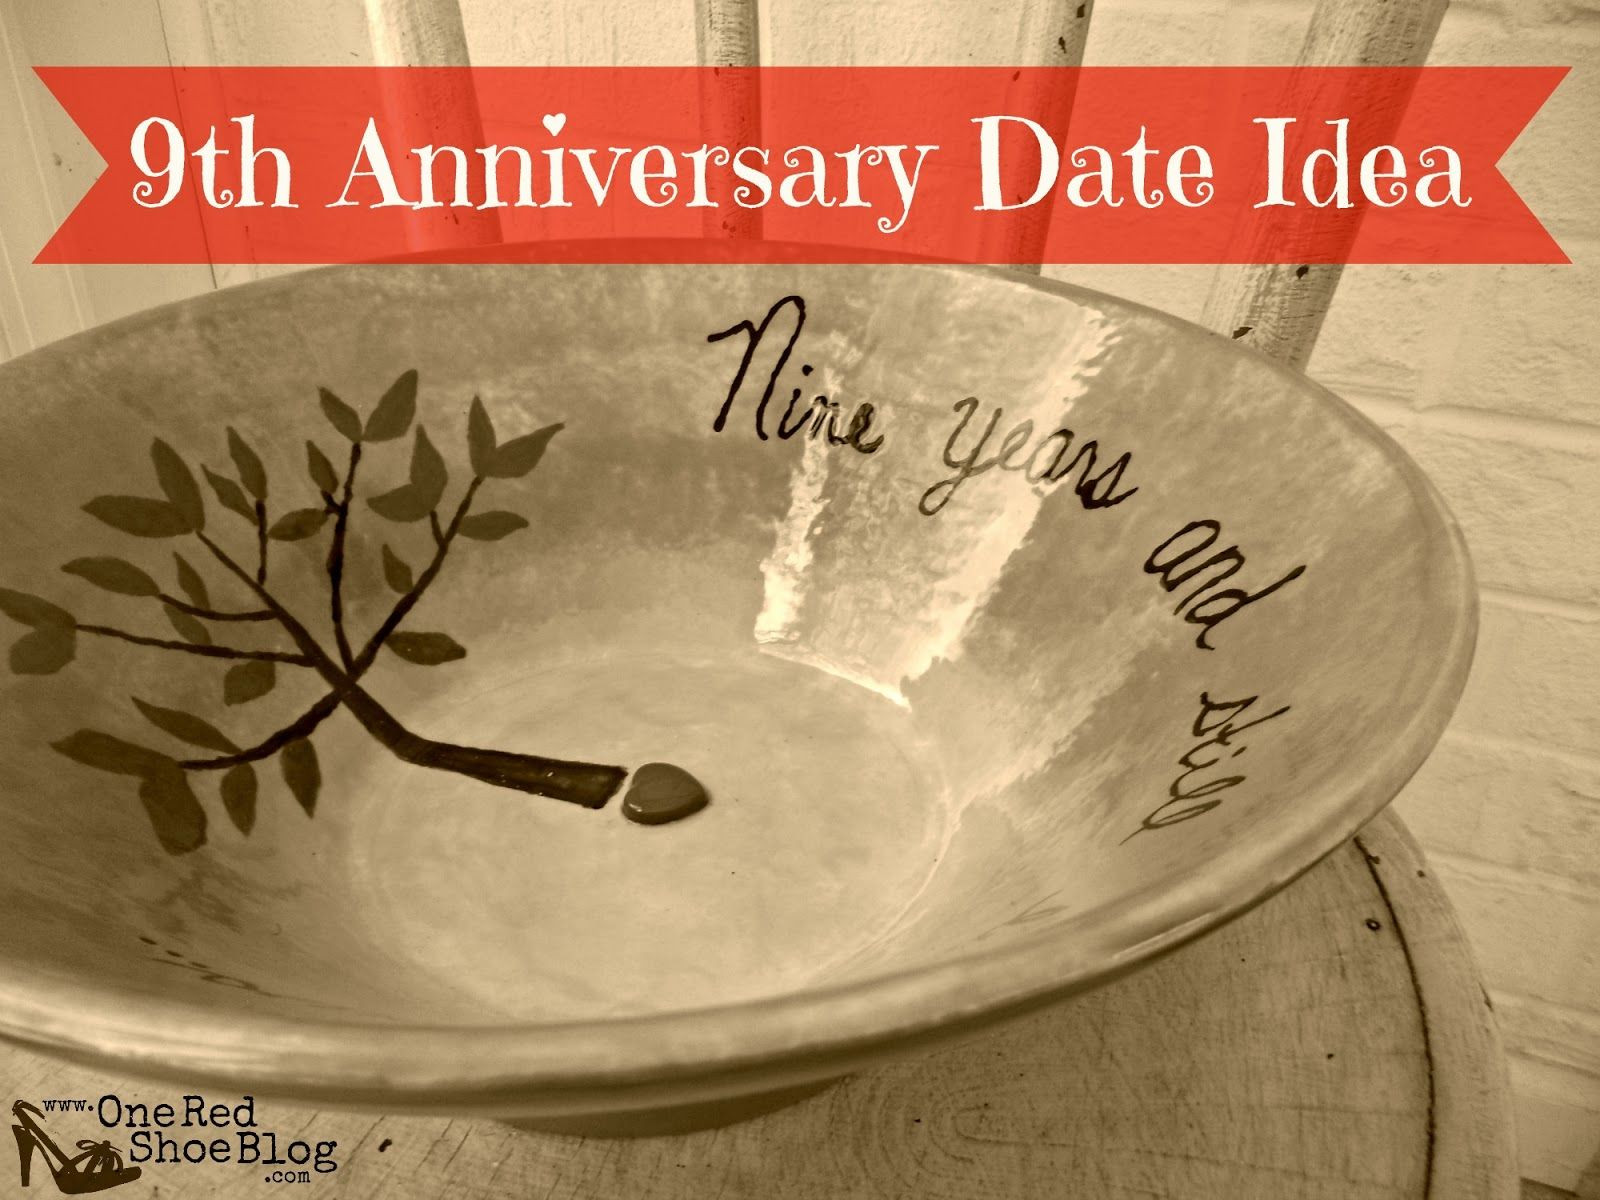 Ninth Anniversary Gift Ideas  9th anniversary pottery idea for anniversary date night